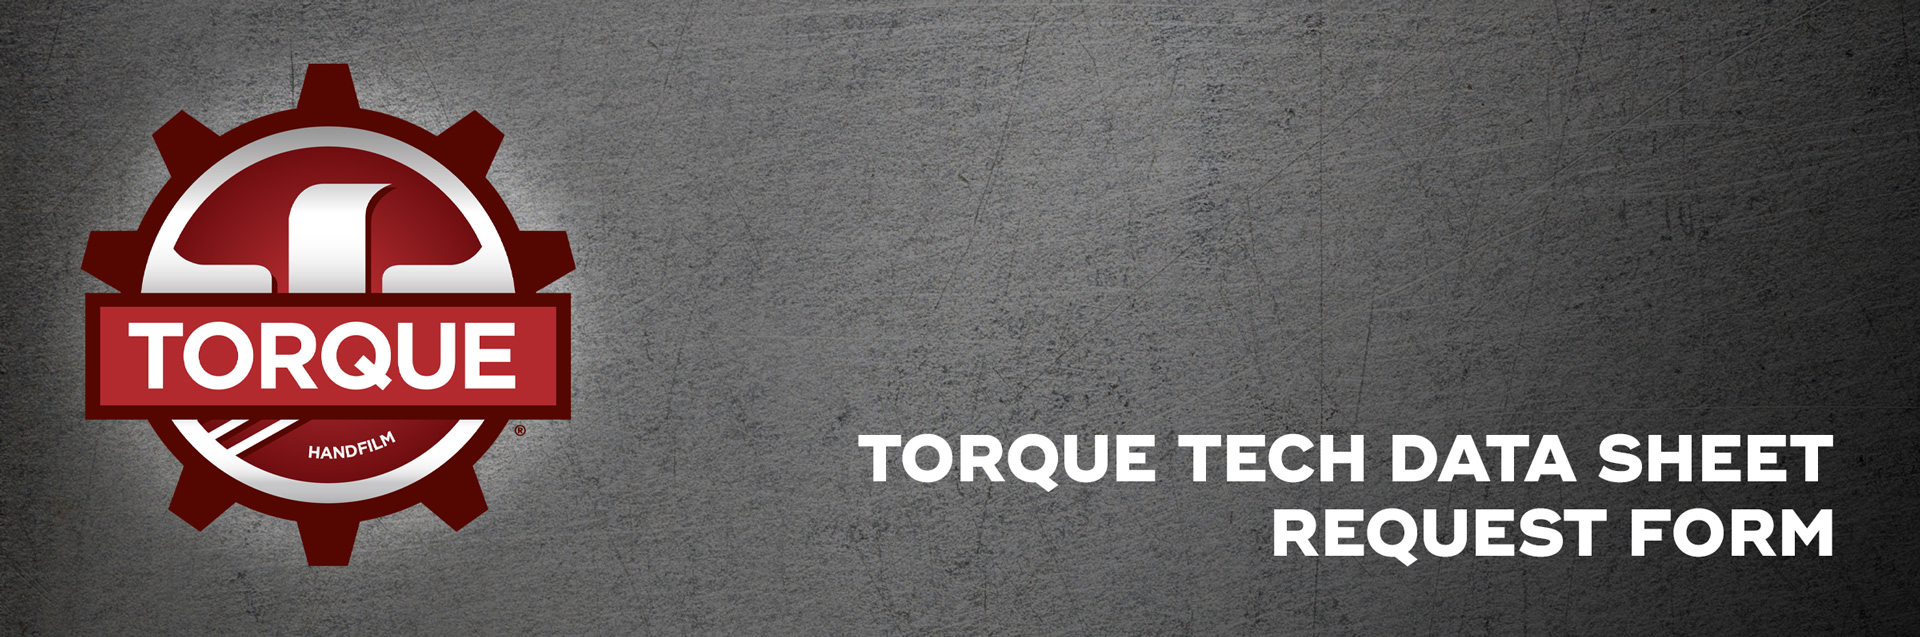 Torque-Tech-Data-Sheet-Request-Form